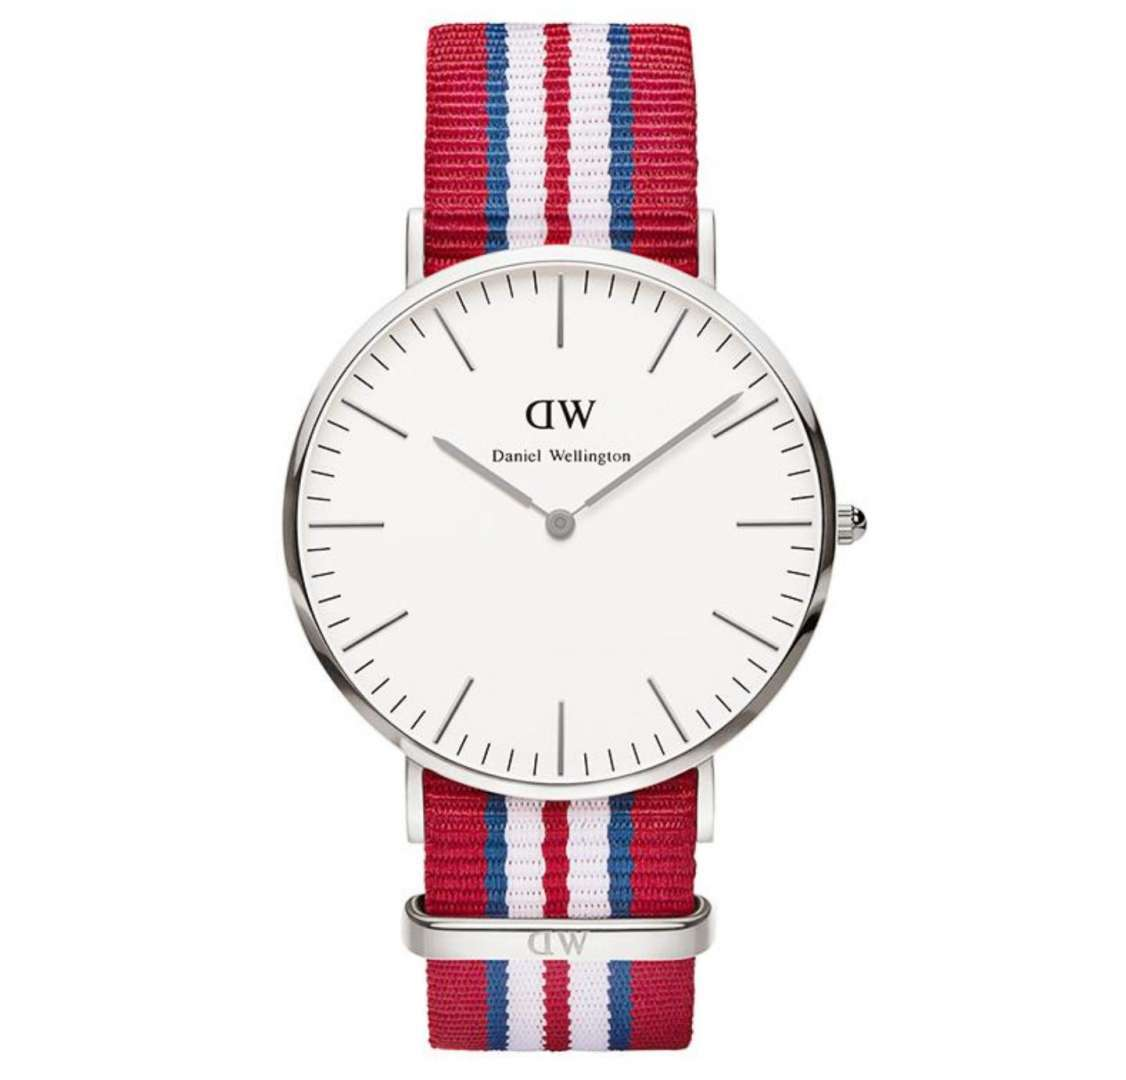 שעון יד אנלוגי daniel wellington 0212DW דניאל וולינגטון